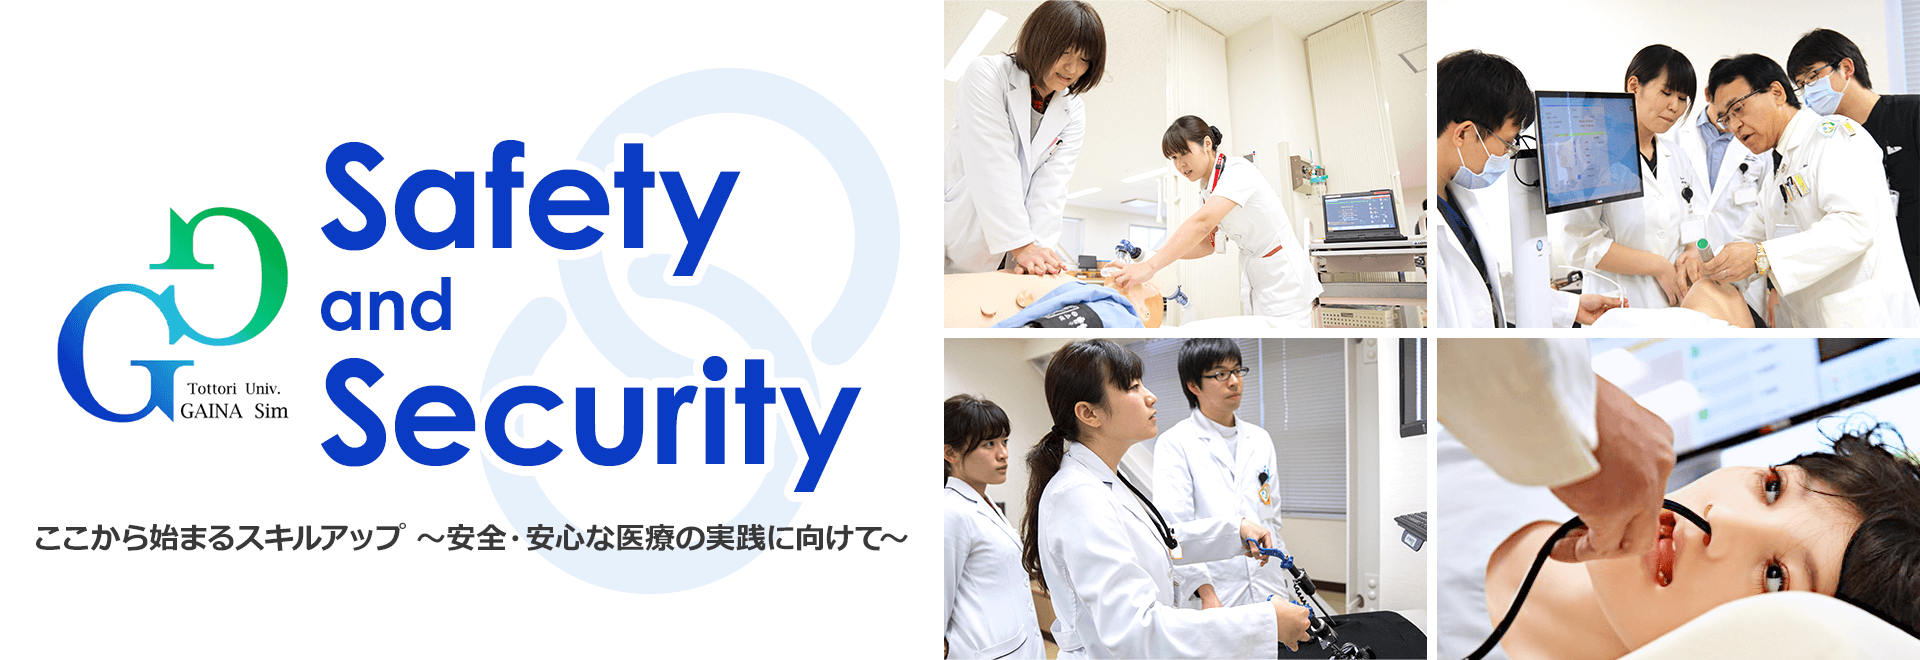 Safety and Security 安心・安全な医療を目指して